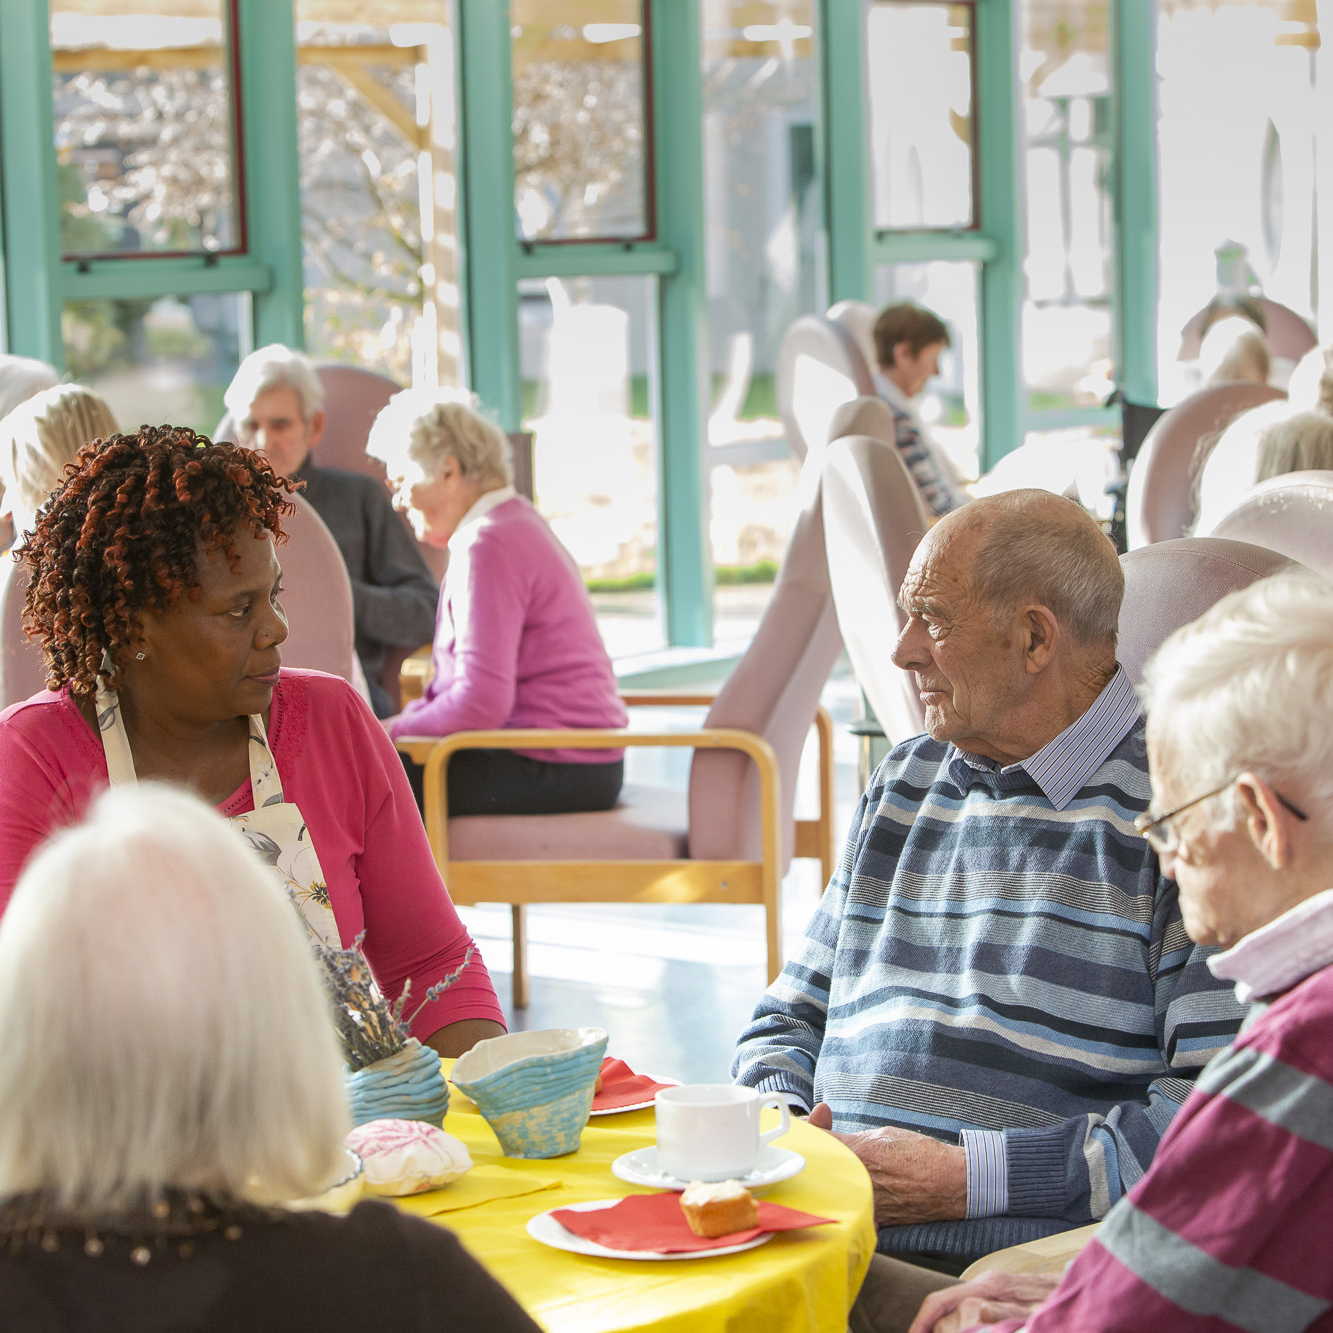 Residents of St. Joseph's Shankhill, at our tea party event to celebrate the Fairland Collective artist in residence.